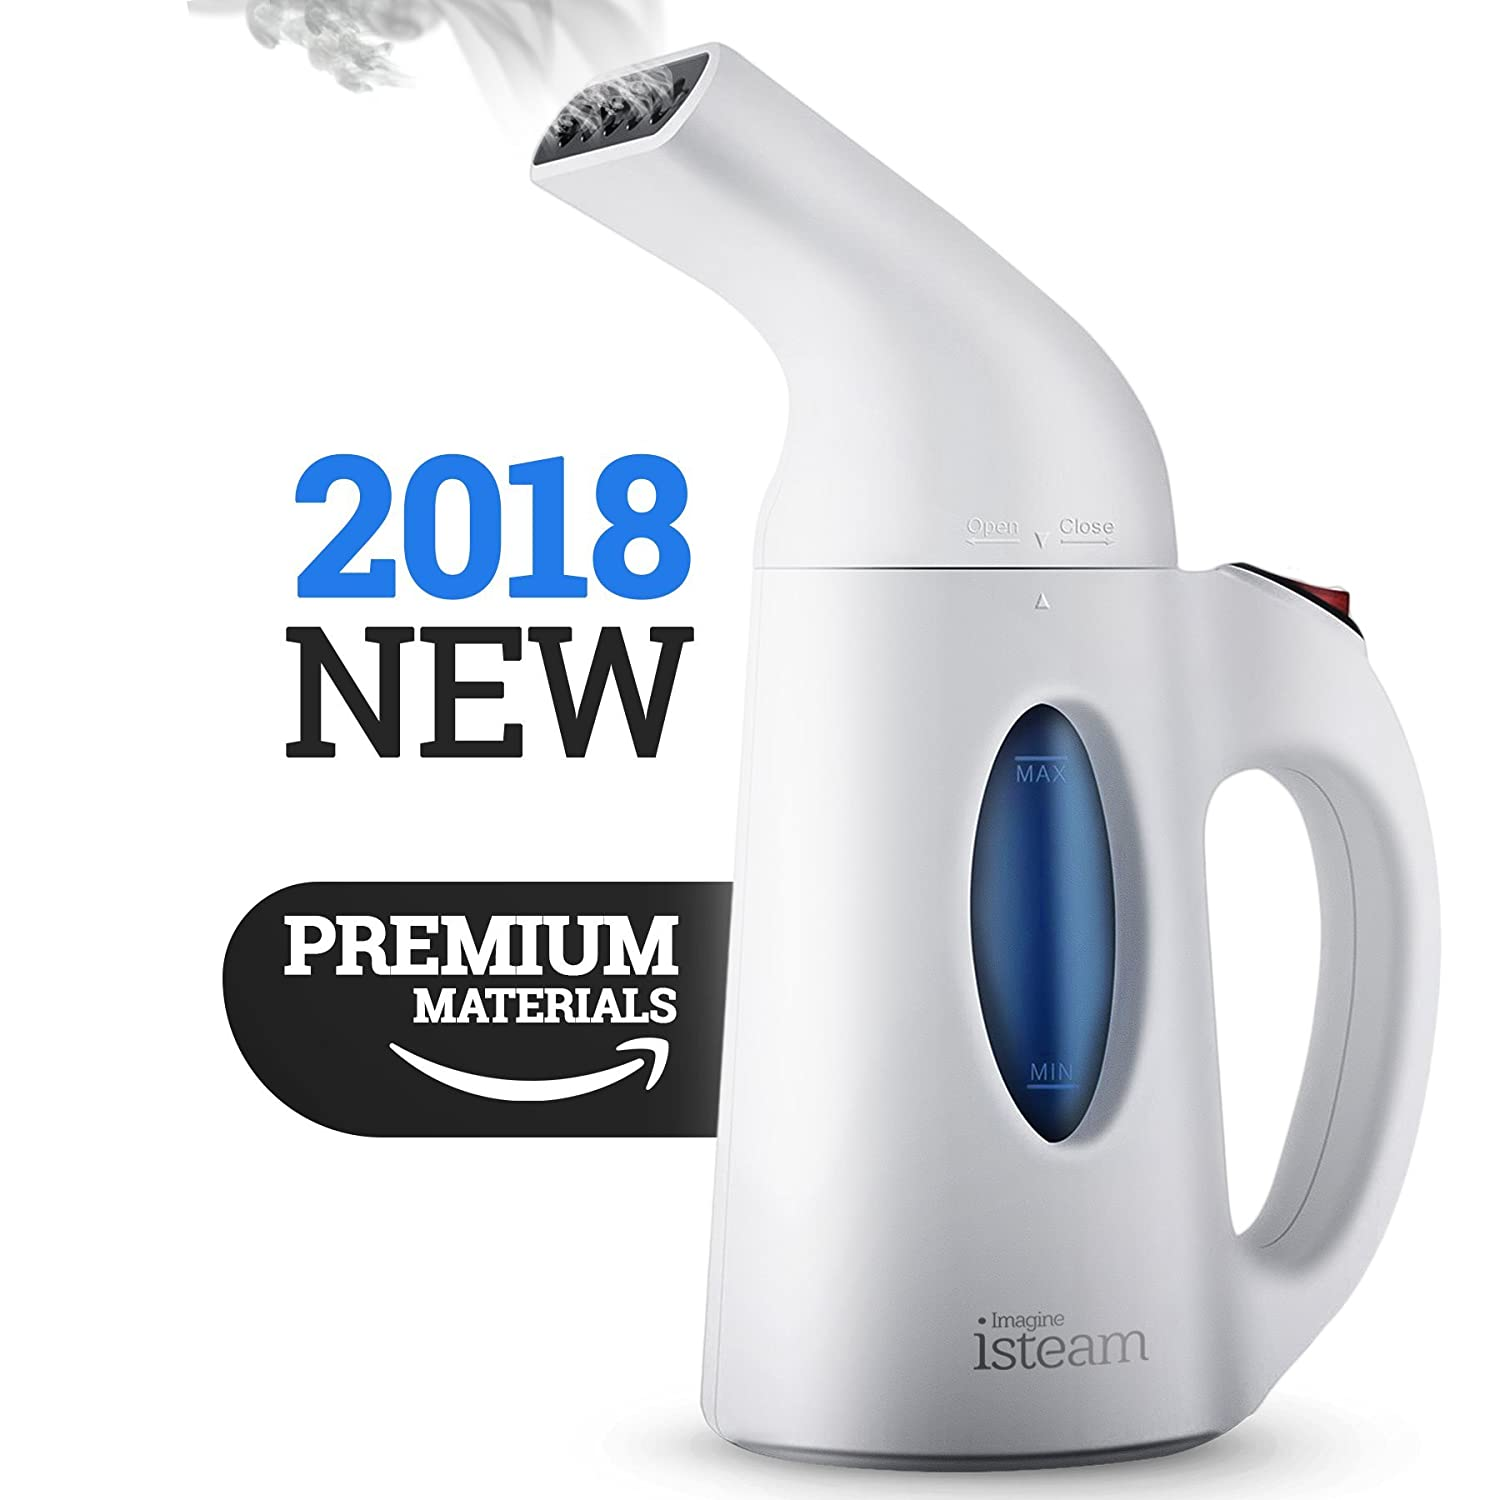 Steamer For Clothes, Handheld Clothes Steamers.4 In 1 Powerful Steamer Wrinkle Remover. Clean, Sterilize And Steamer Garment And Soft Fabric. Portable, Compact Travel/Home.Ultrafast 100 Percents Safe   Isteam by I Steam